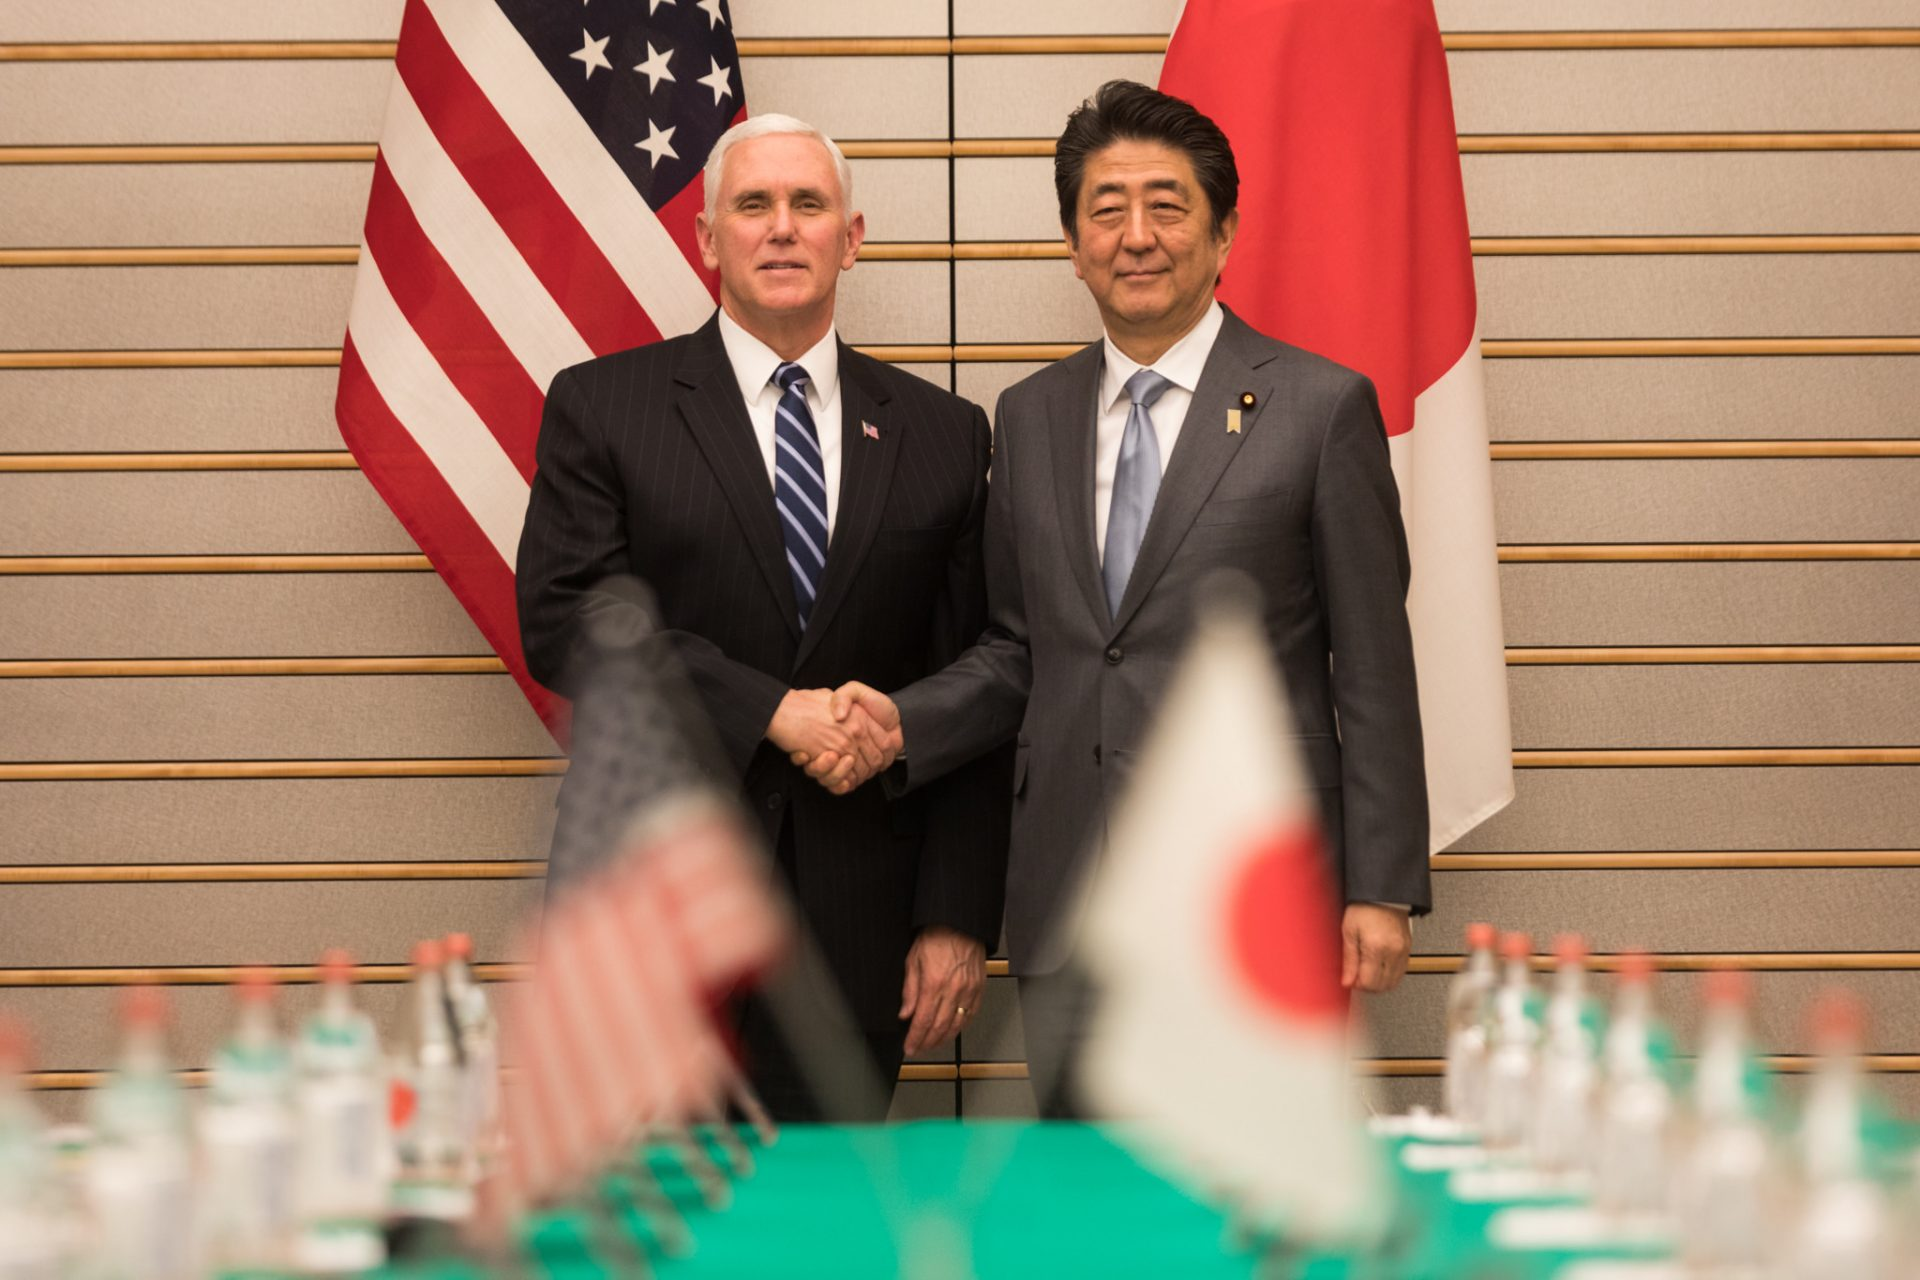 Vice President Mike Pence participates in an expanded bilateral meeting with Japanese Prime Minister Shinzo Abe, Wednesday, February 7, 2018, in Tokyo, Japan. (Image: Official White House Photo by D. Myles Cullen)